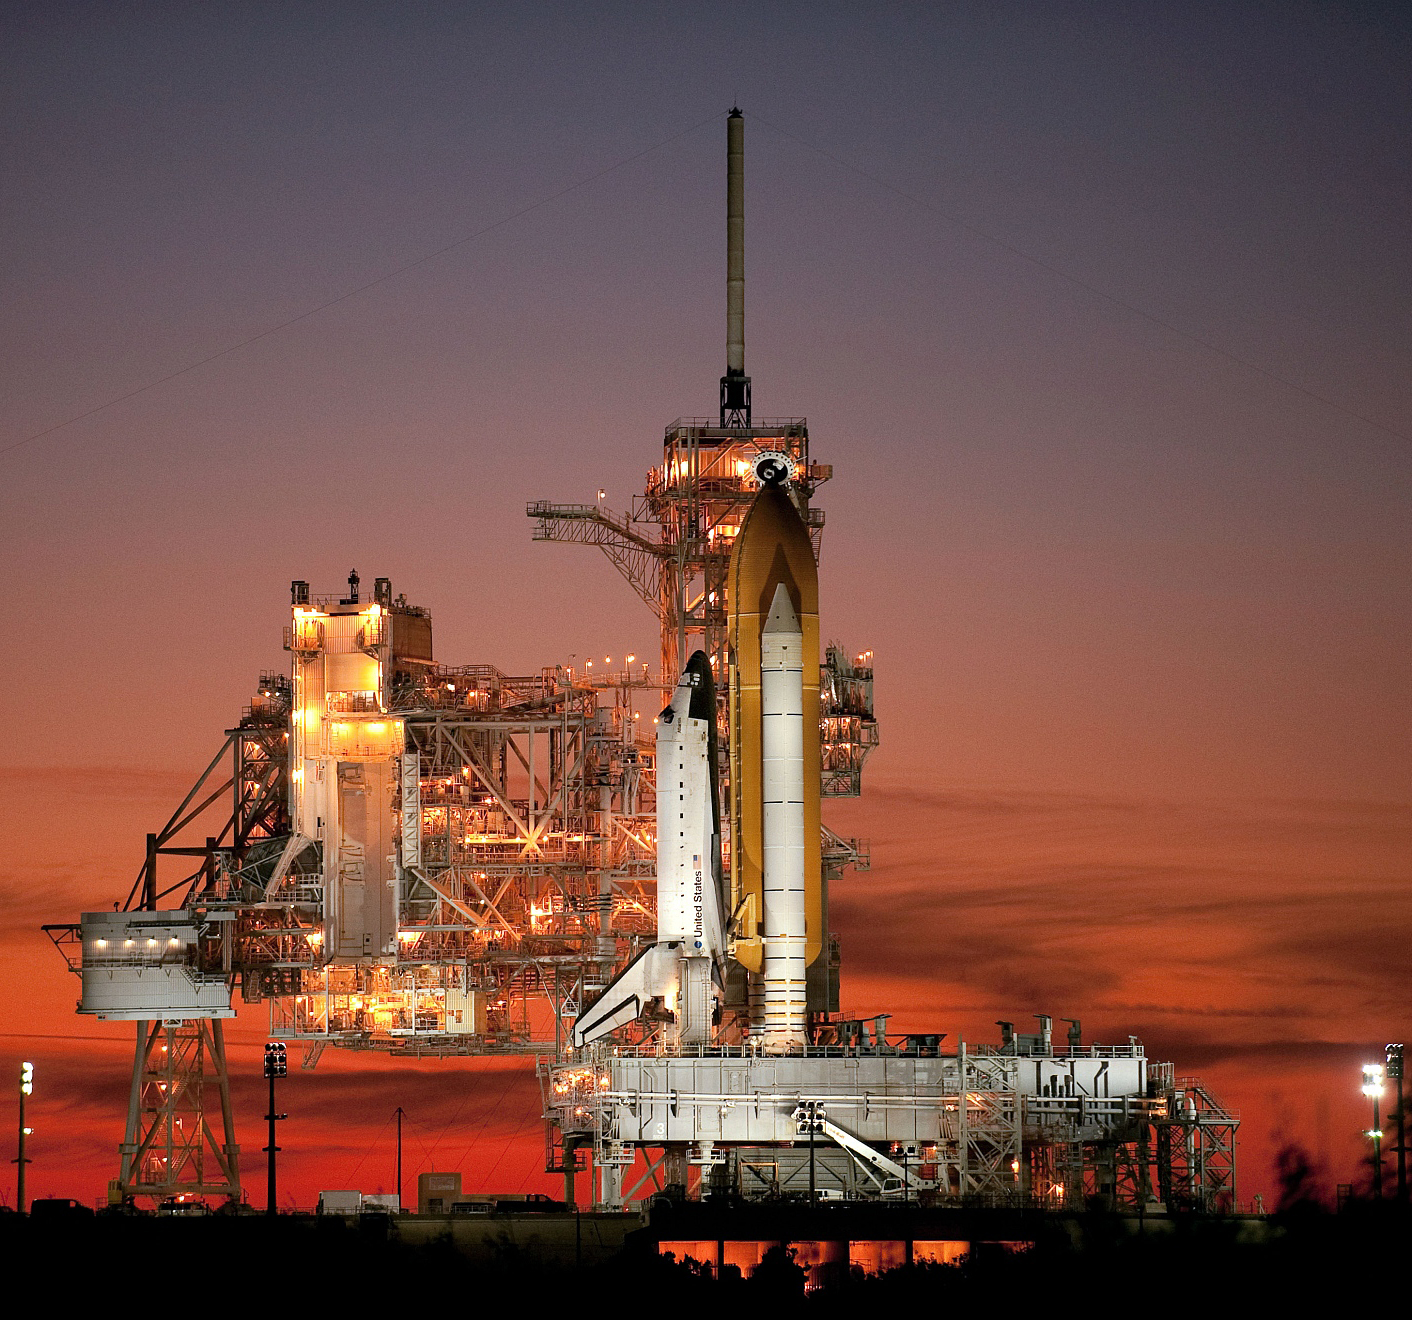 Jean-Baptiste Faure: STS-129 Space Shuttle Atlantis on Pad 39A